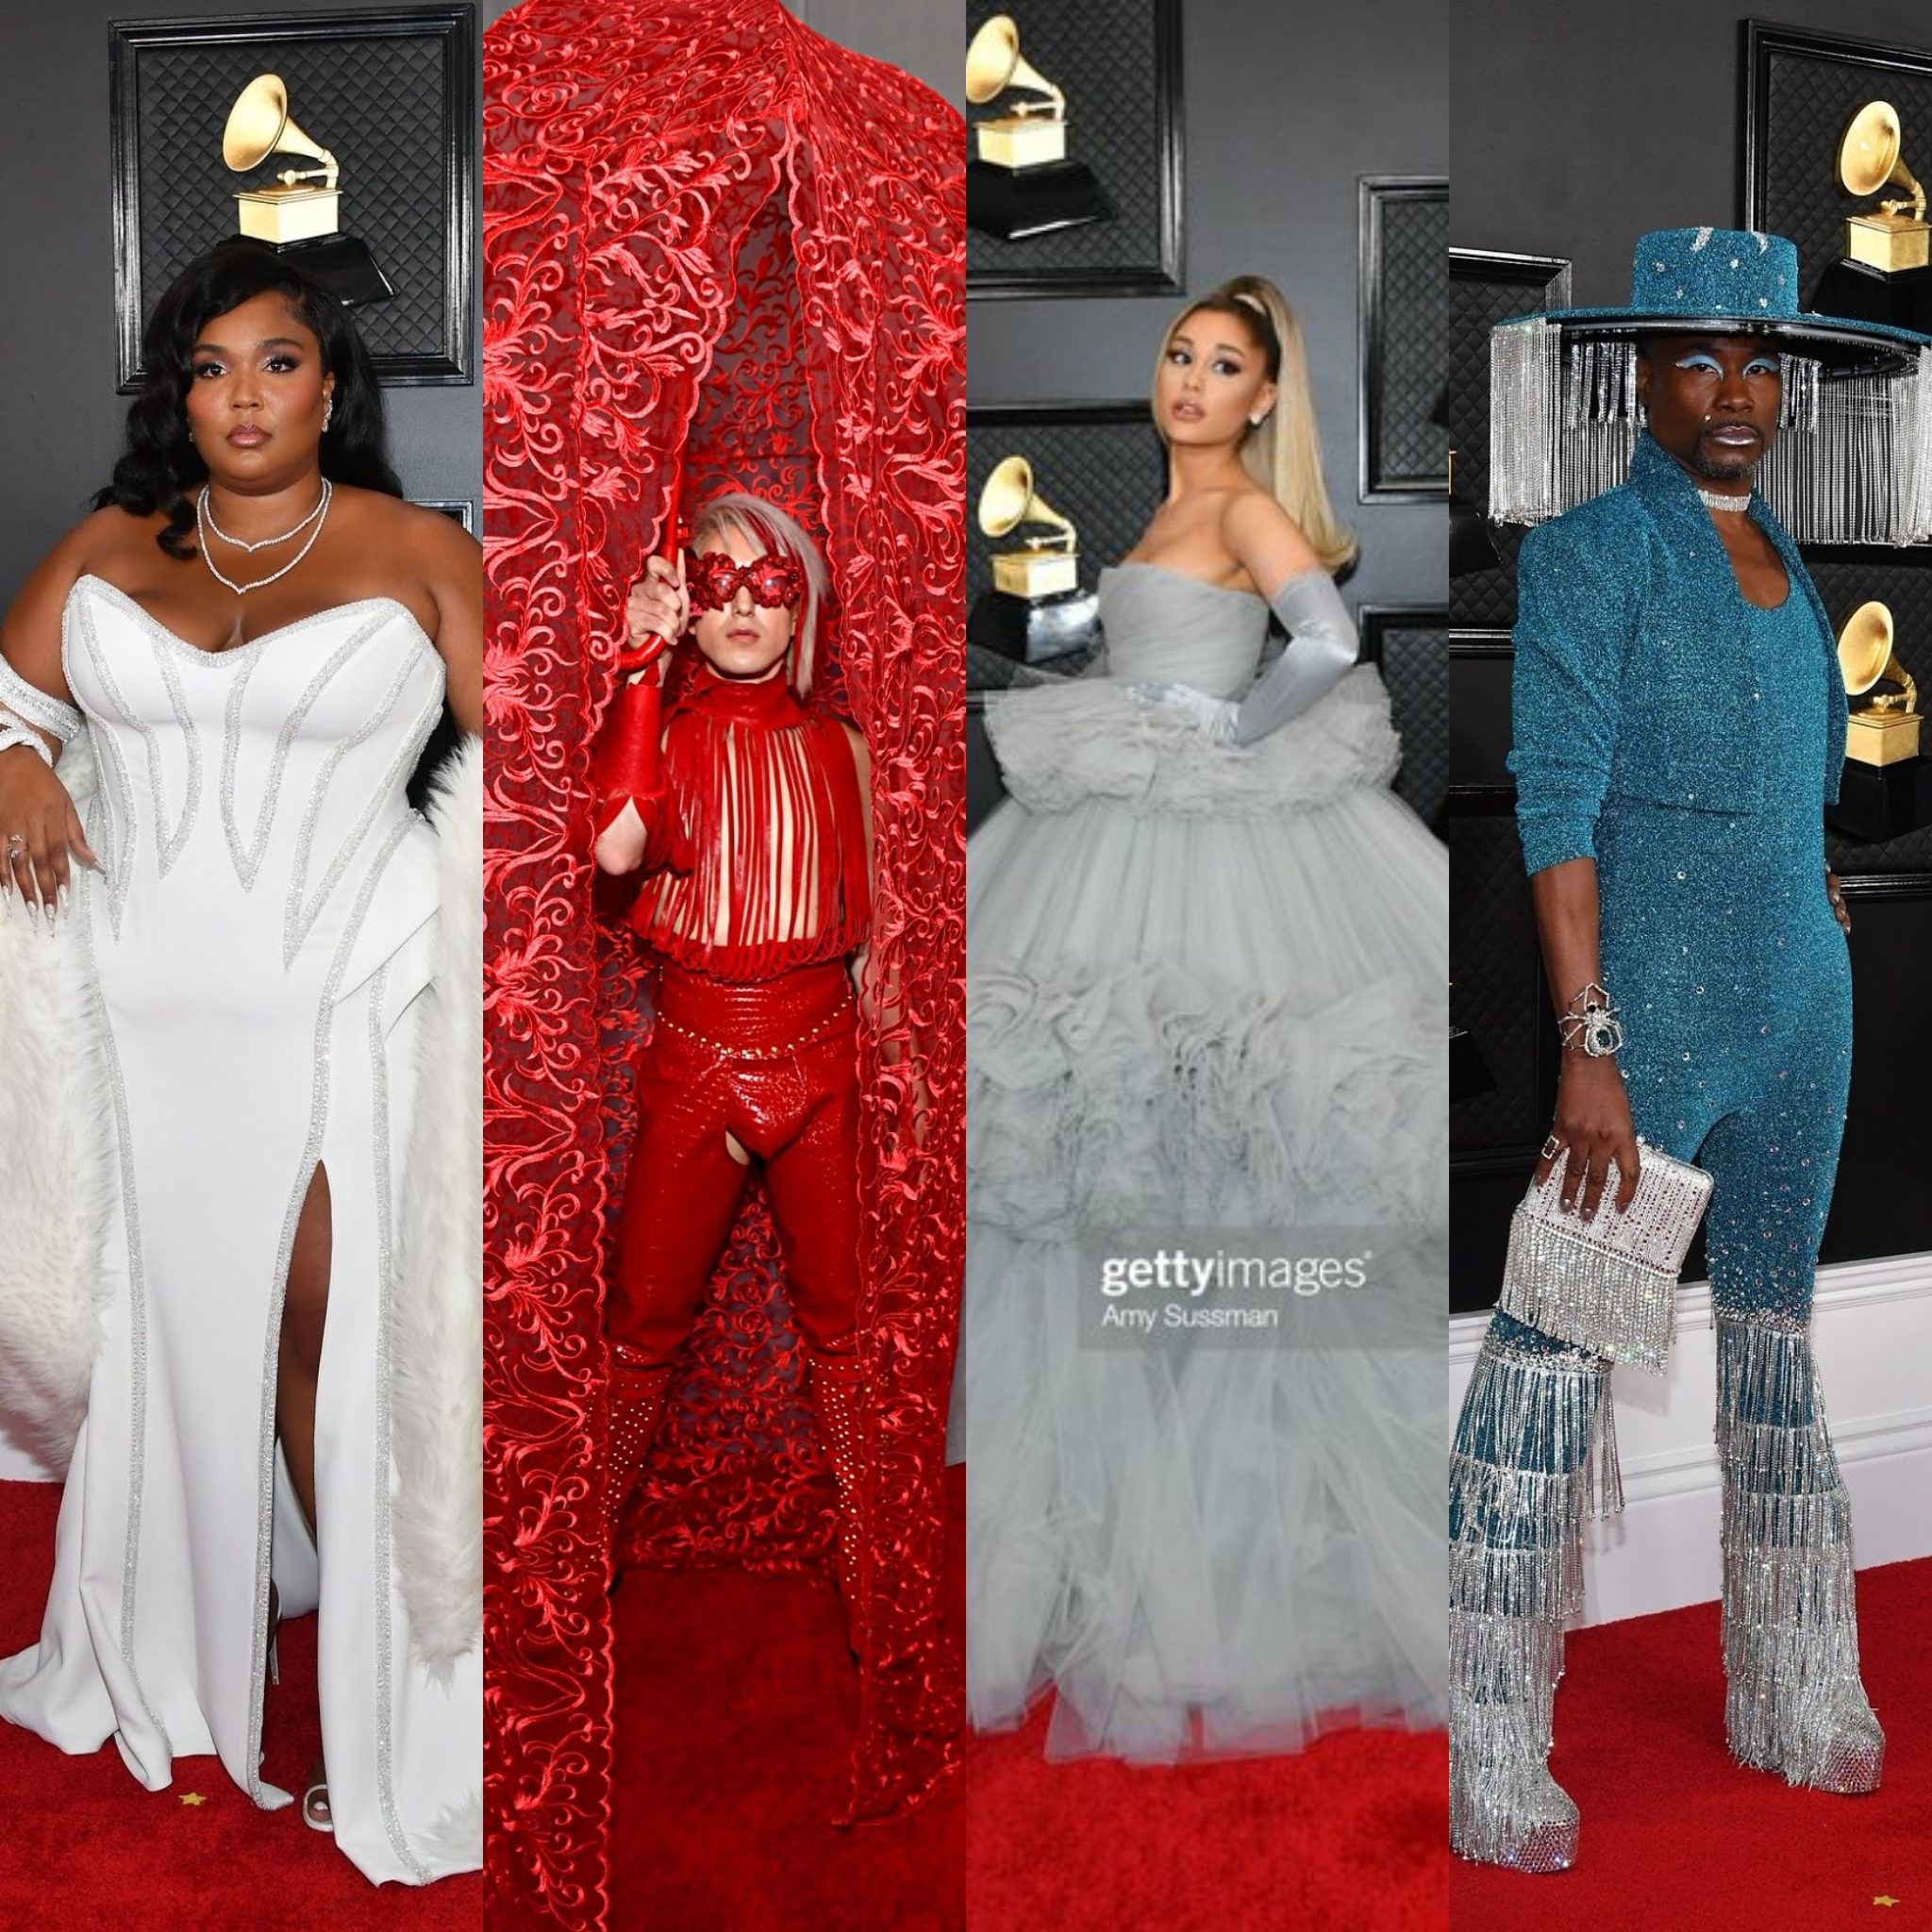 Grammys 2020 Best And Worst Dressed Stars On The Red Carpet Ameyaw Debrah